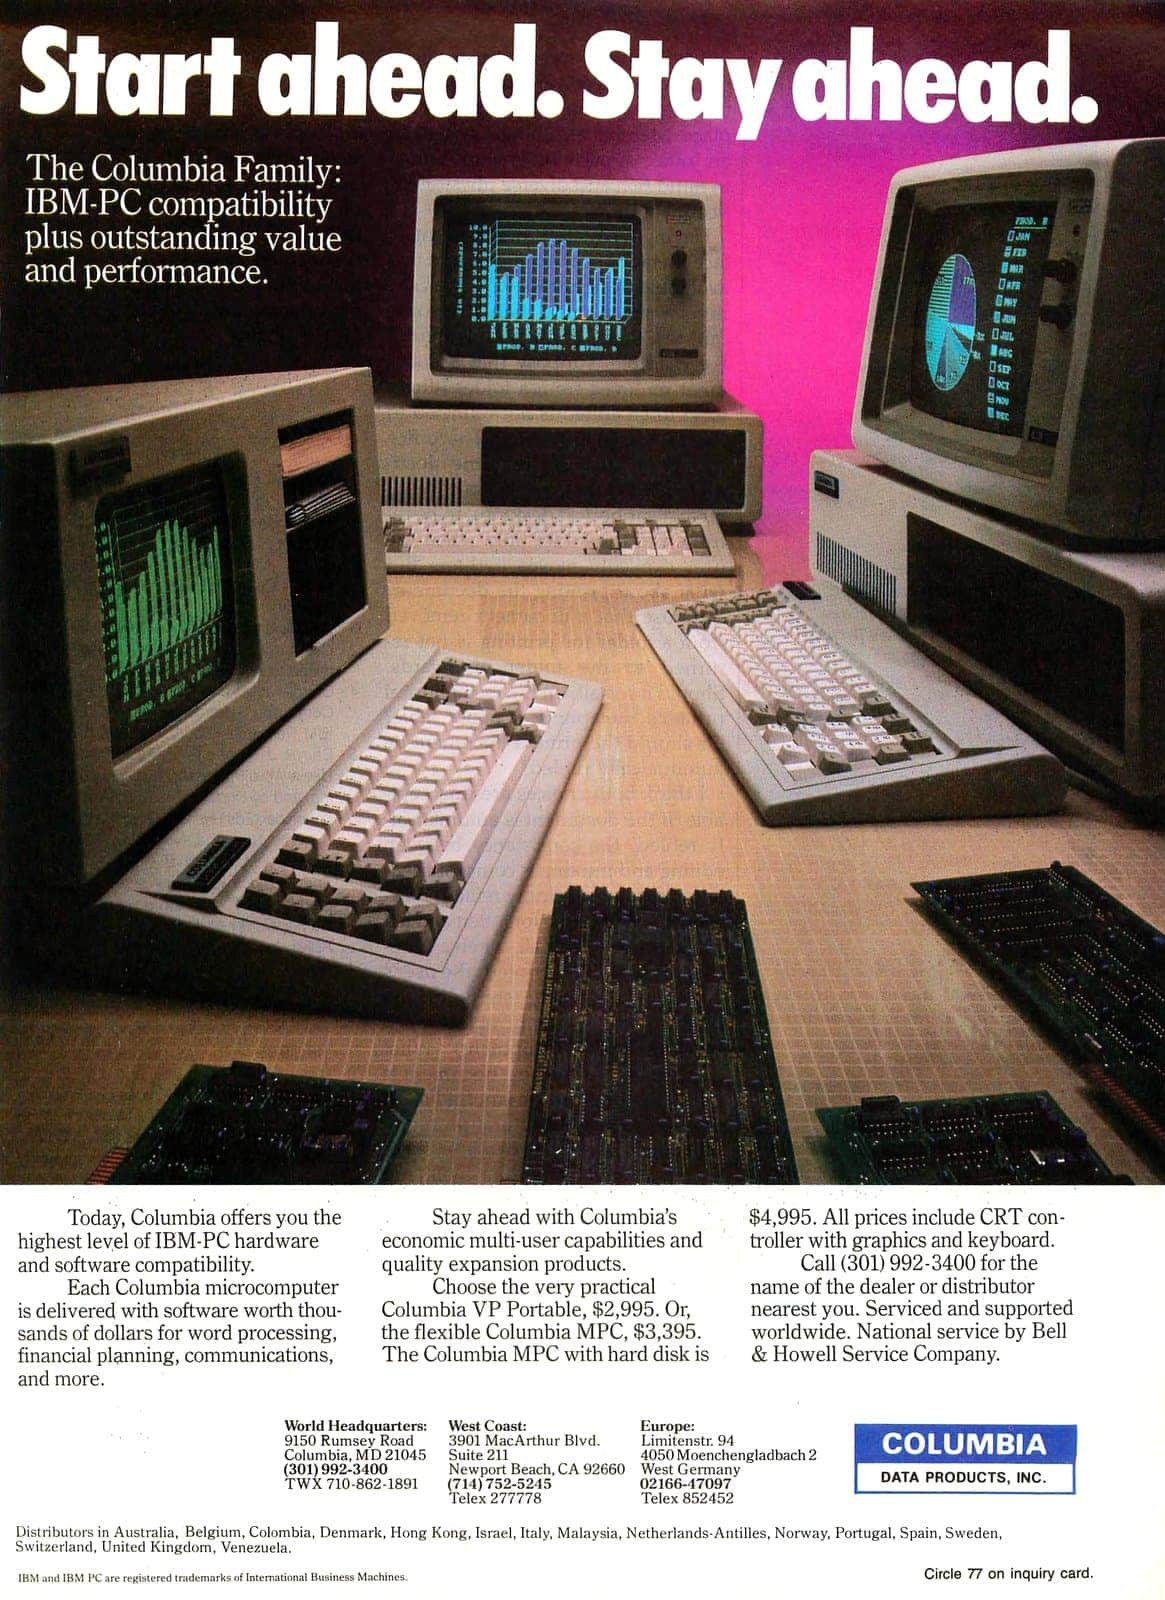 Columbia VP portable for $2995, or the MPC for $4995 (1983)